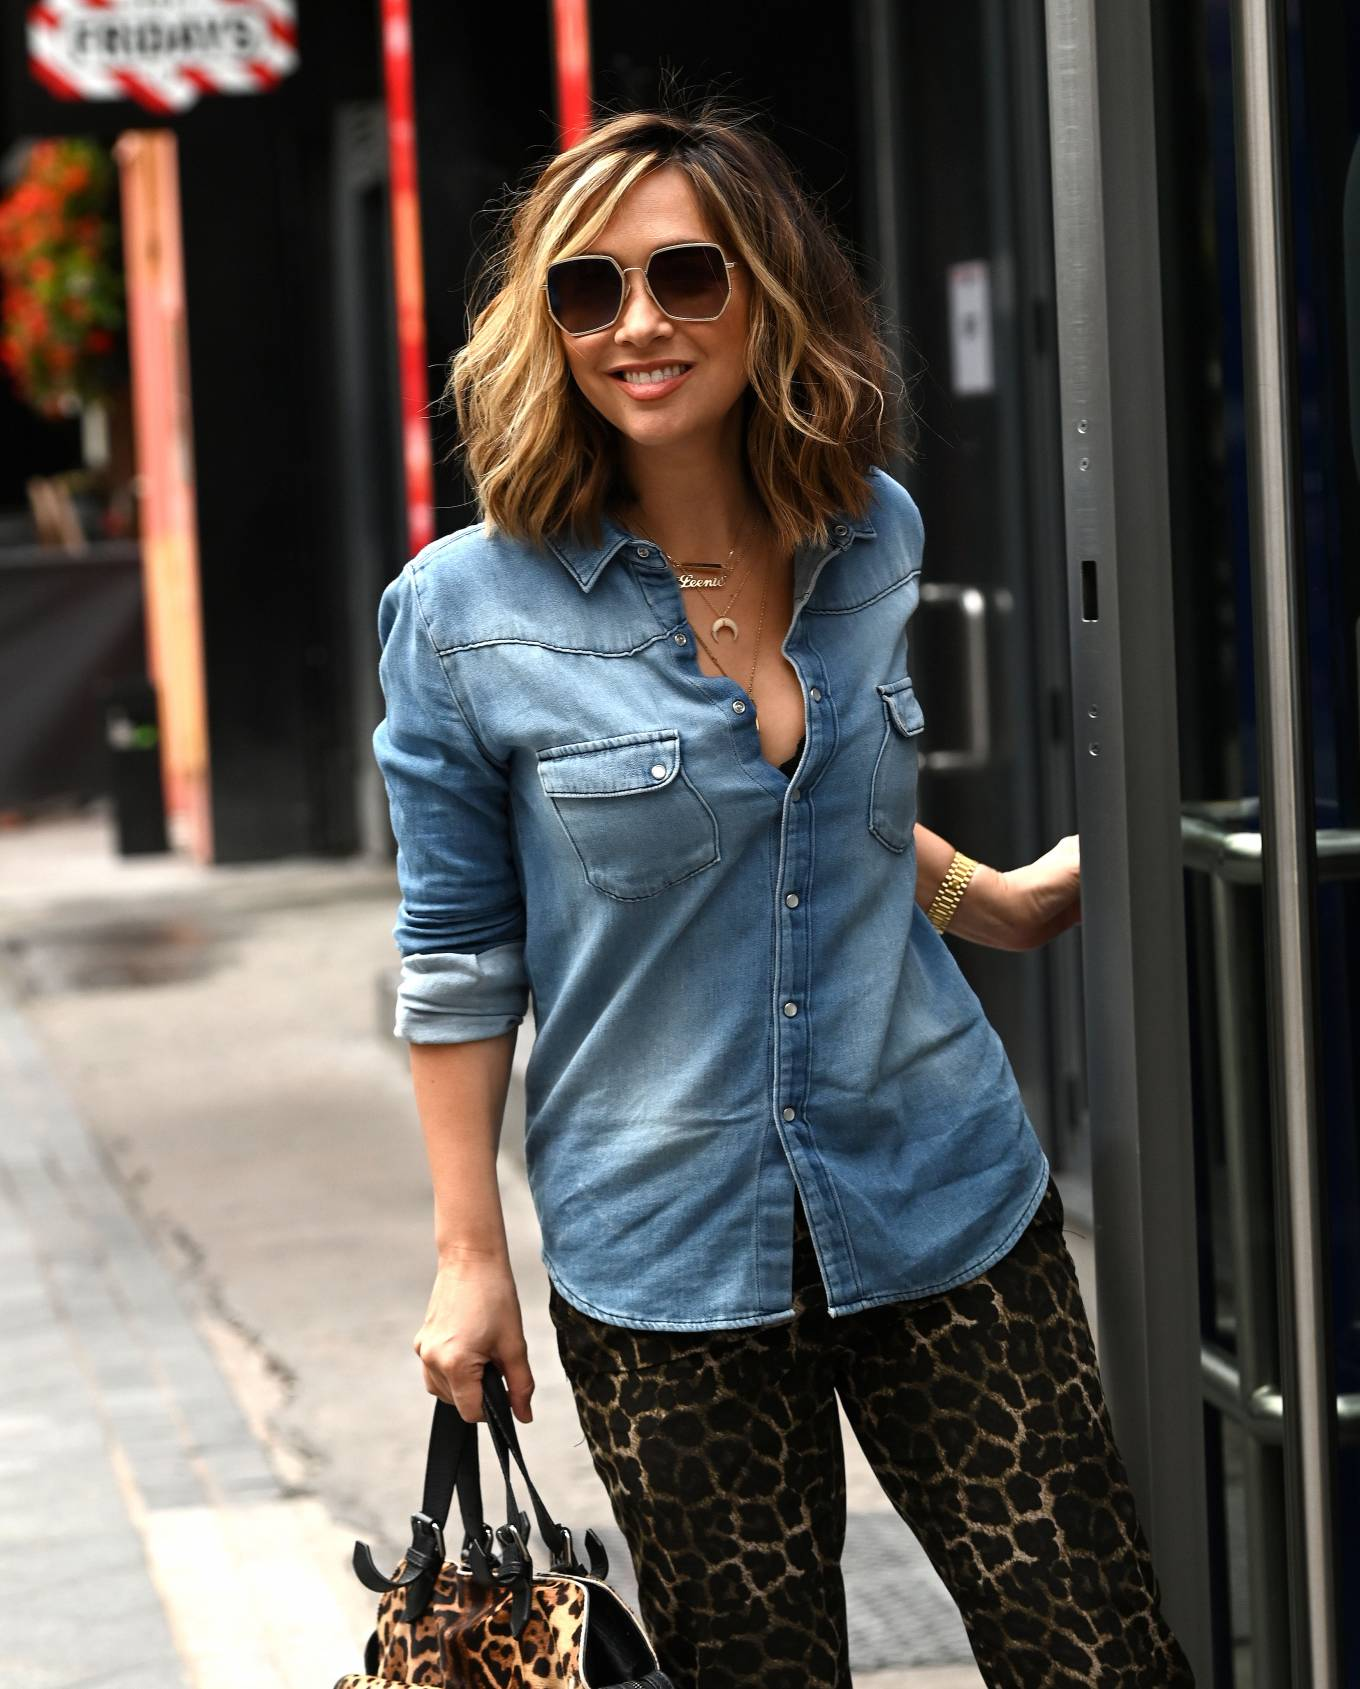 Myleene Klass - In denim at the Global Studios in London